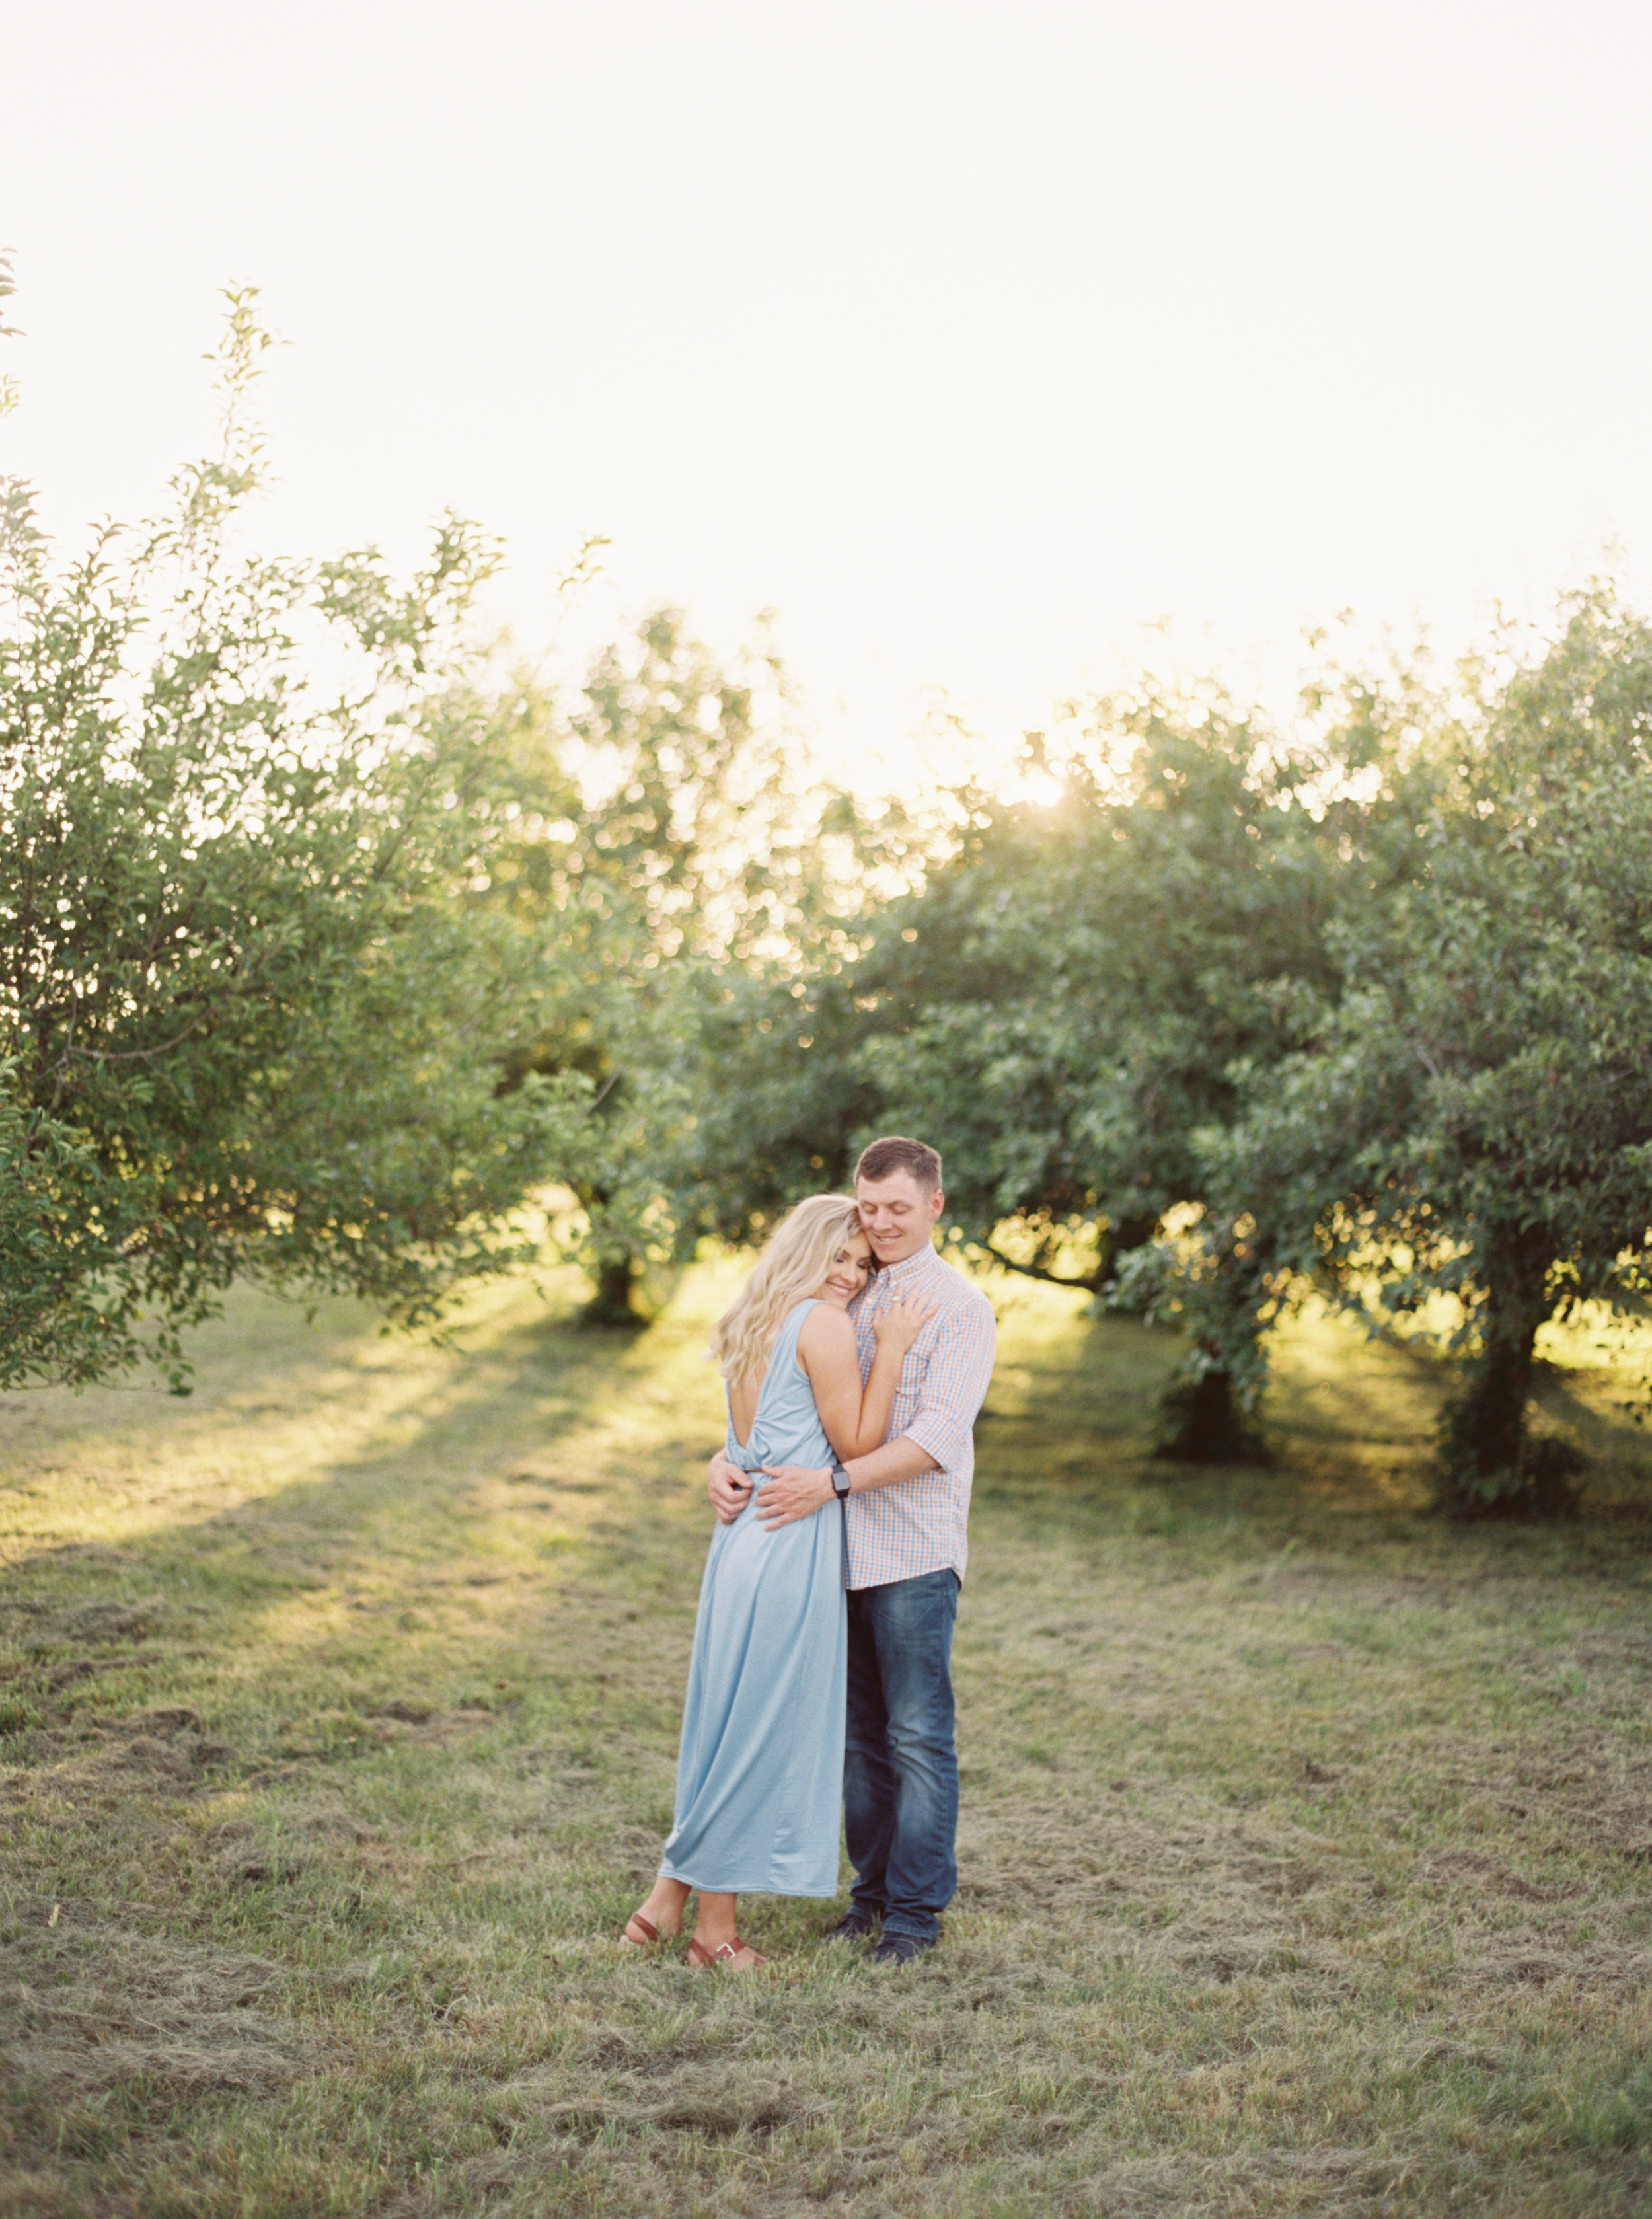 Hannah_Derrick_Engagement_Knoxville_Outdoor_Vineyard_Orchard__Film_Abigail_malone_Photography-91.jpg